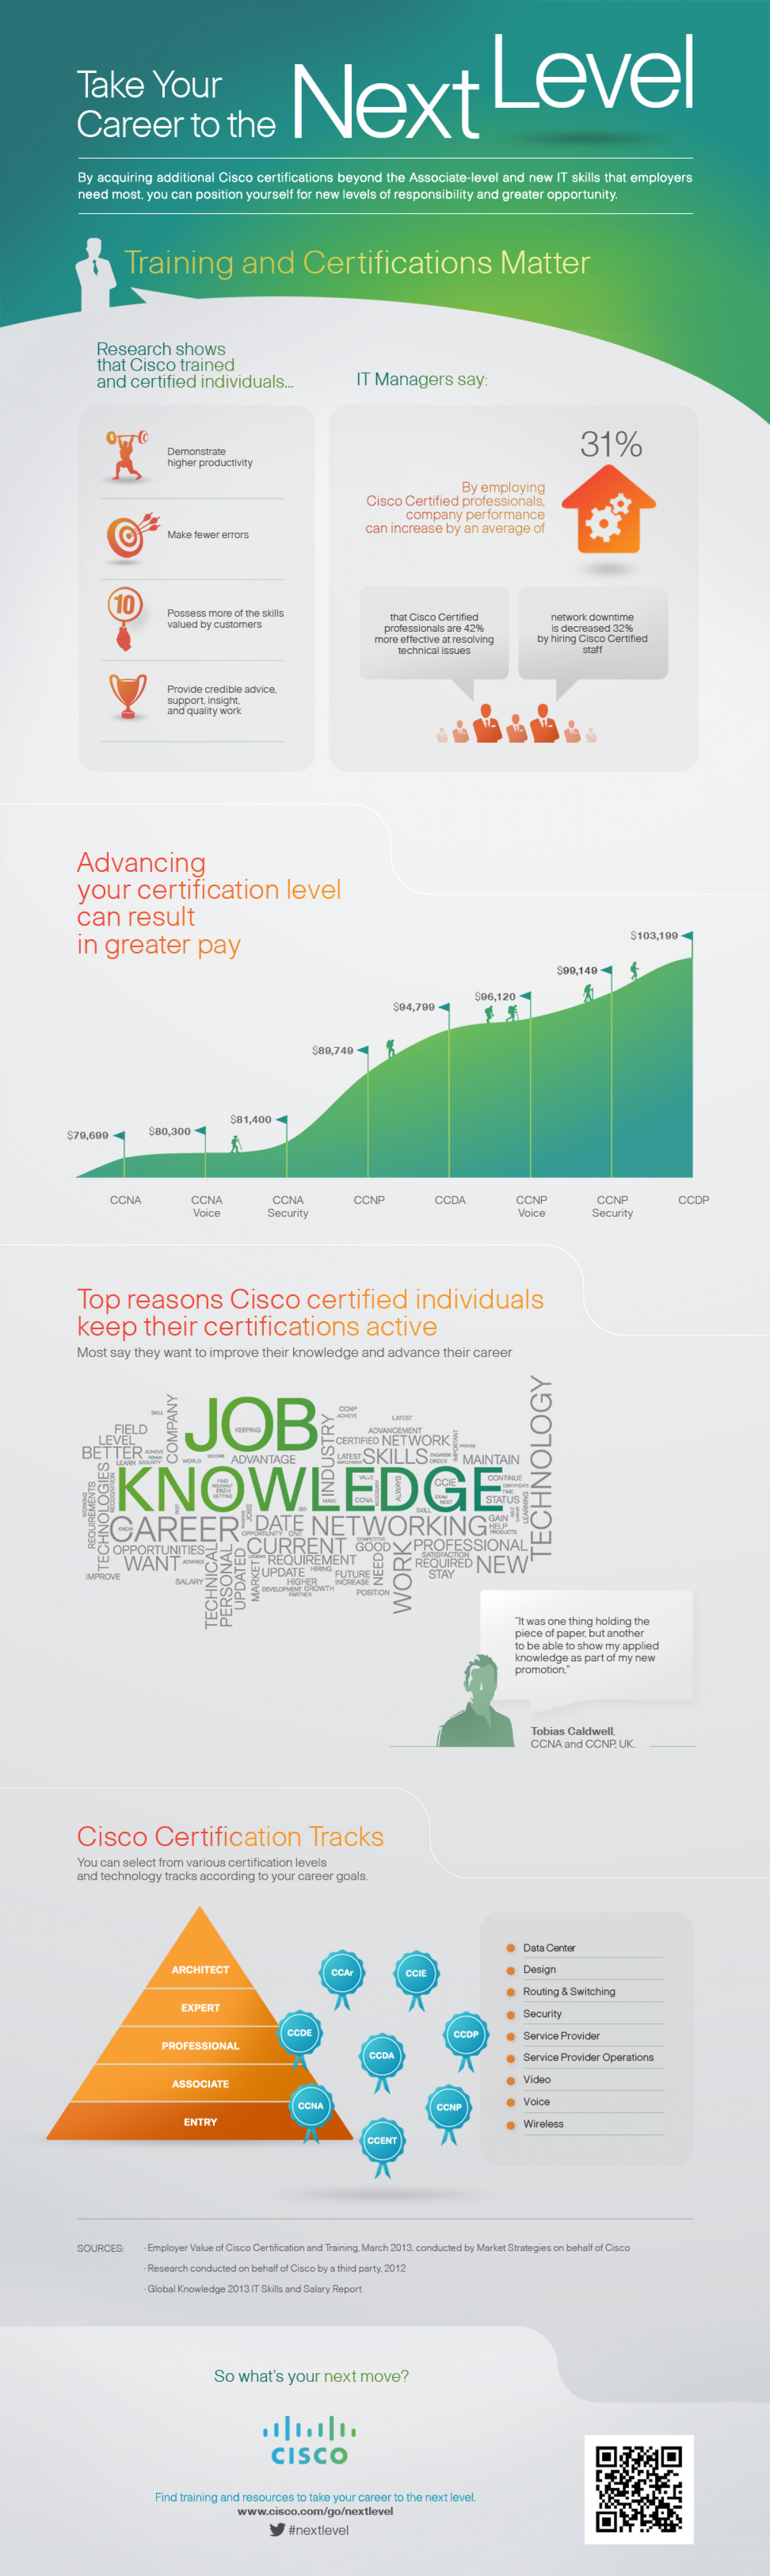 Take Your Career to the Next Level Infographic